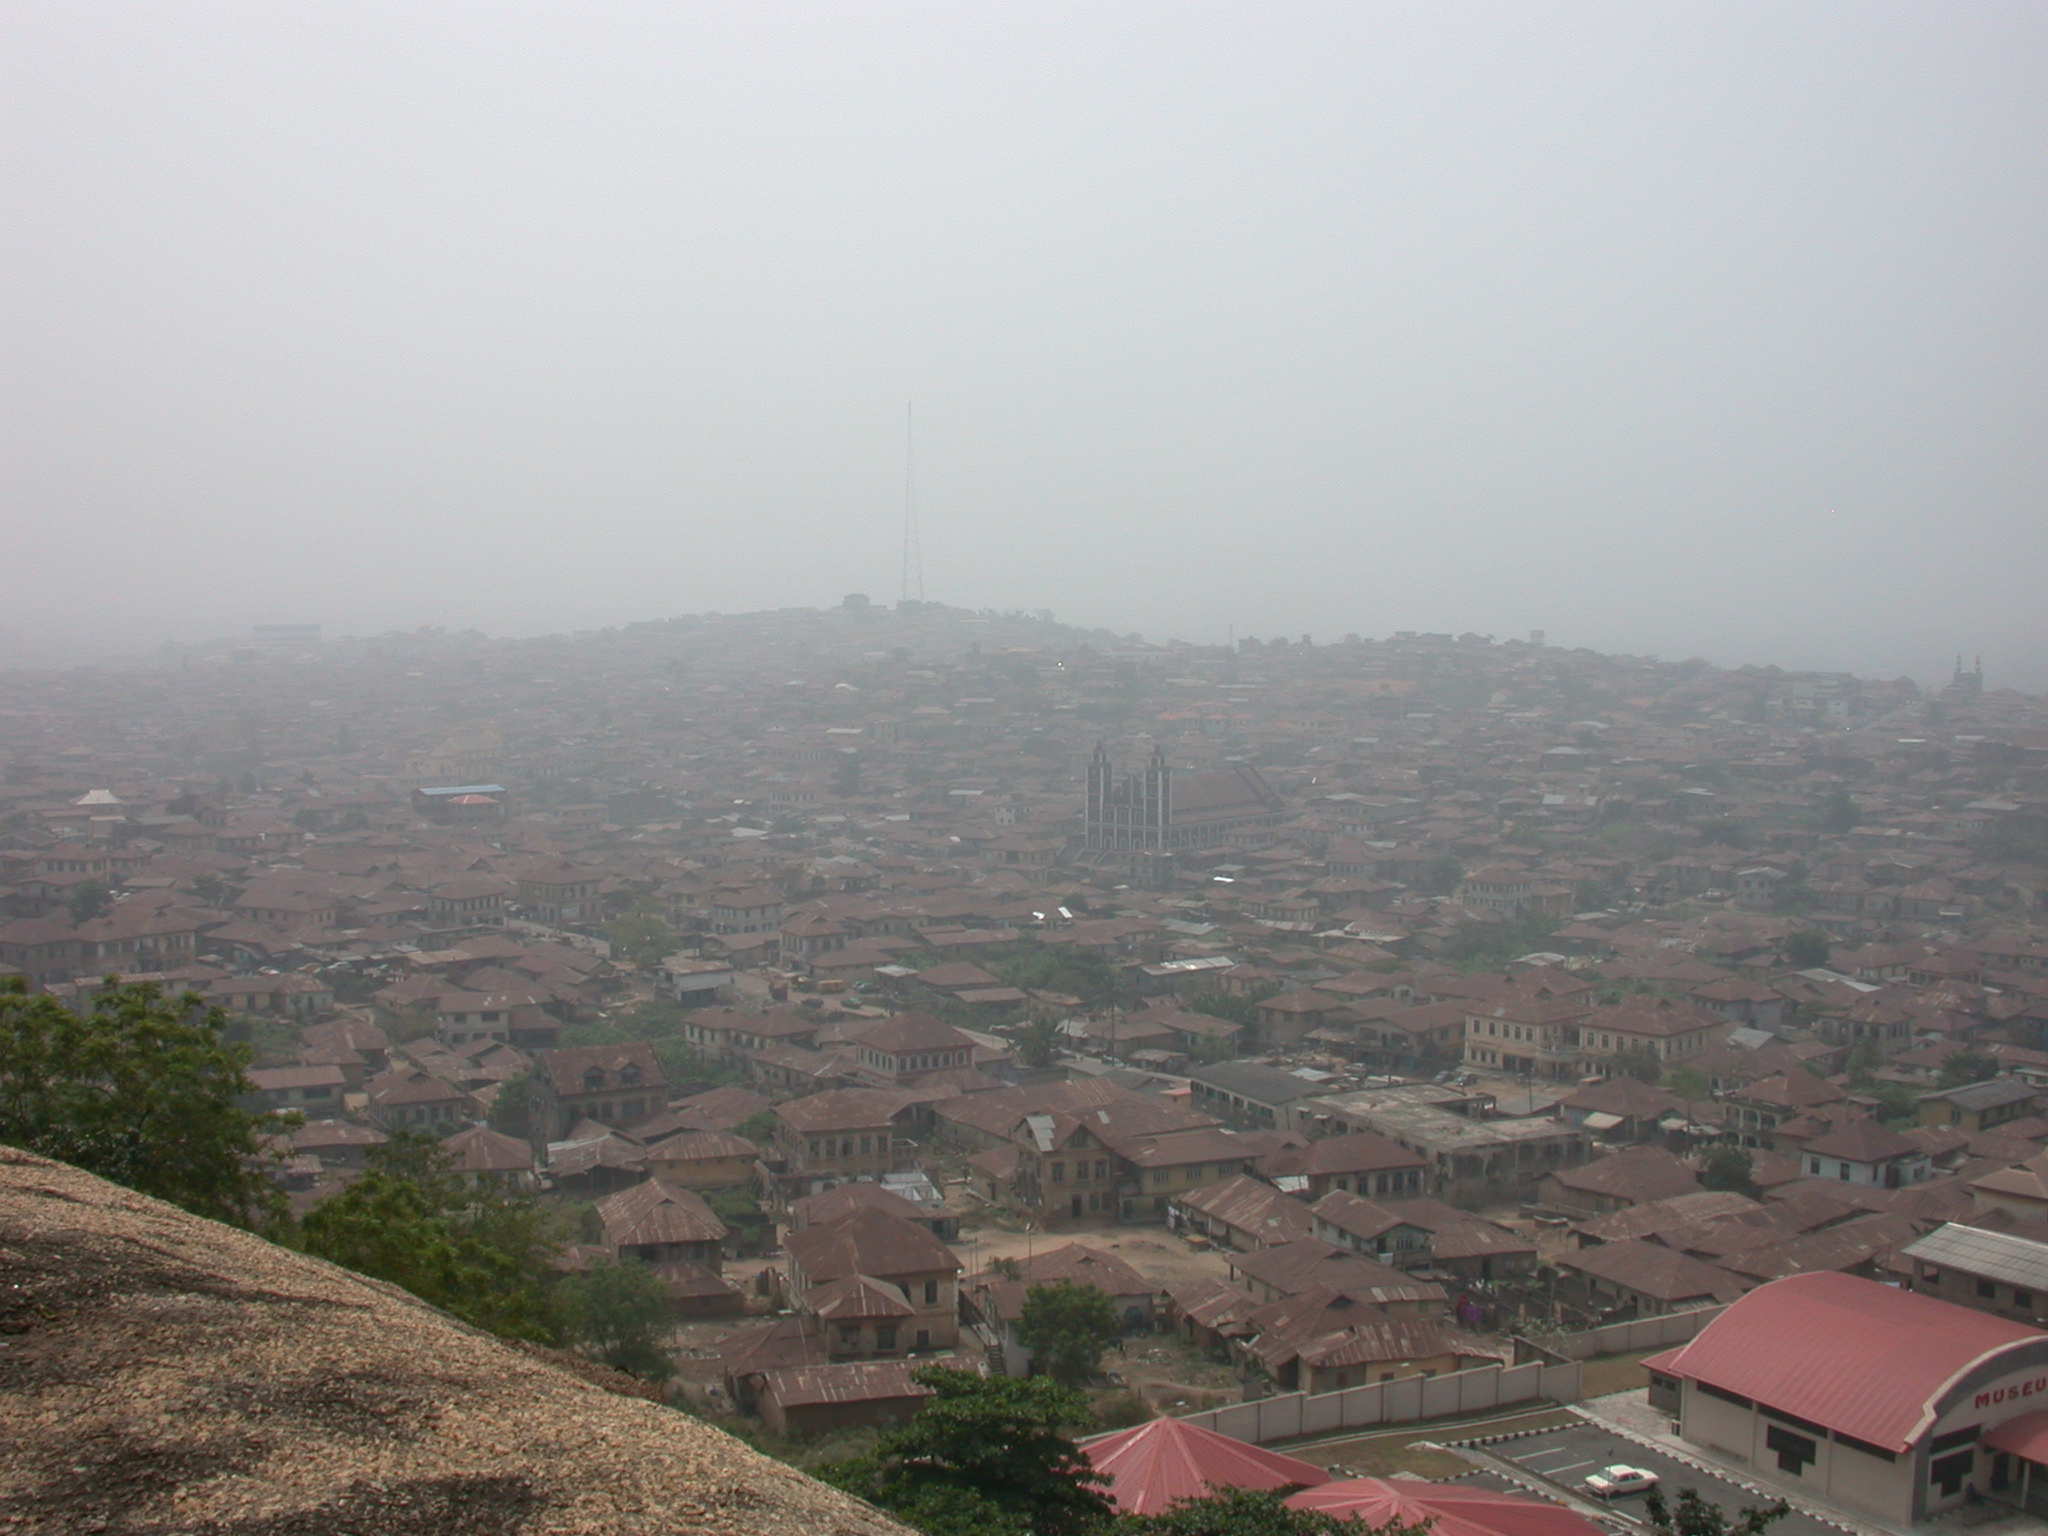 View of City, Olumo Rock, Abeokuta, Nigeria